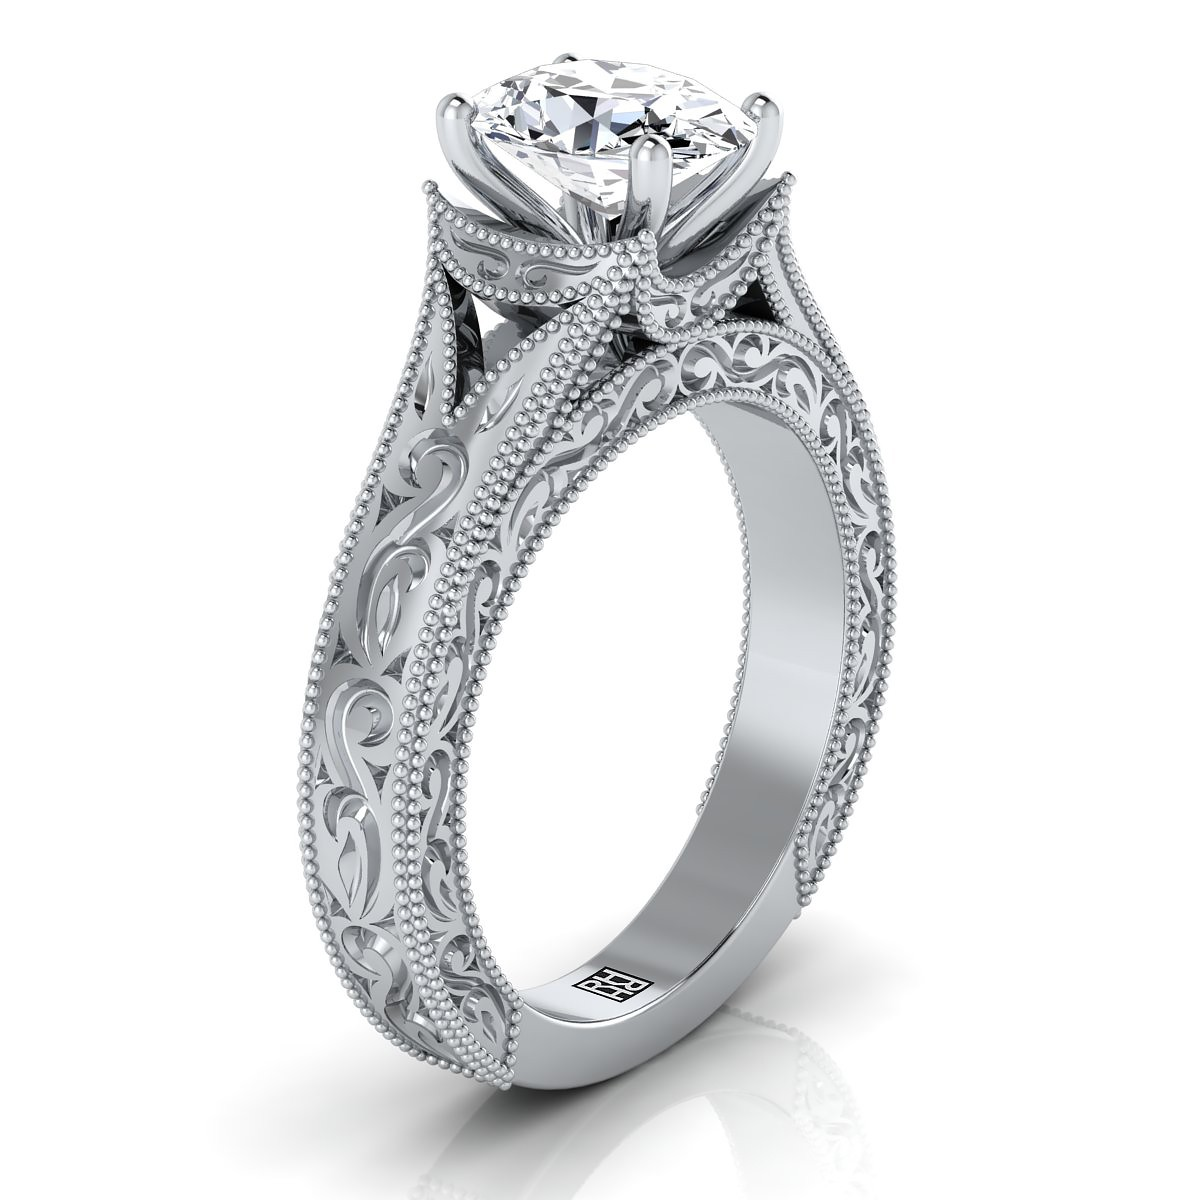 Oval Antique Inspired Engraved Diamond Engagement Ring With Millgrain Finish In 14k White Gold